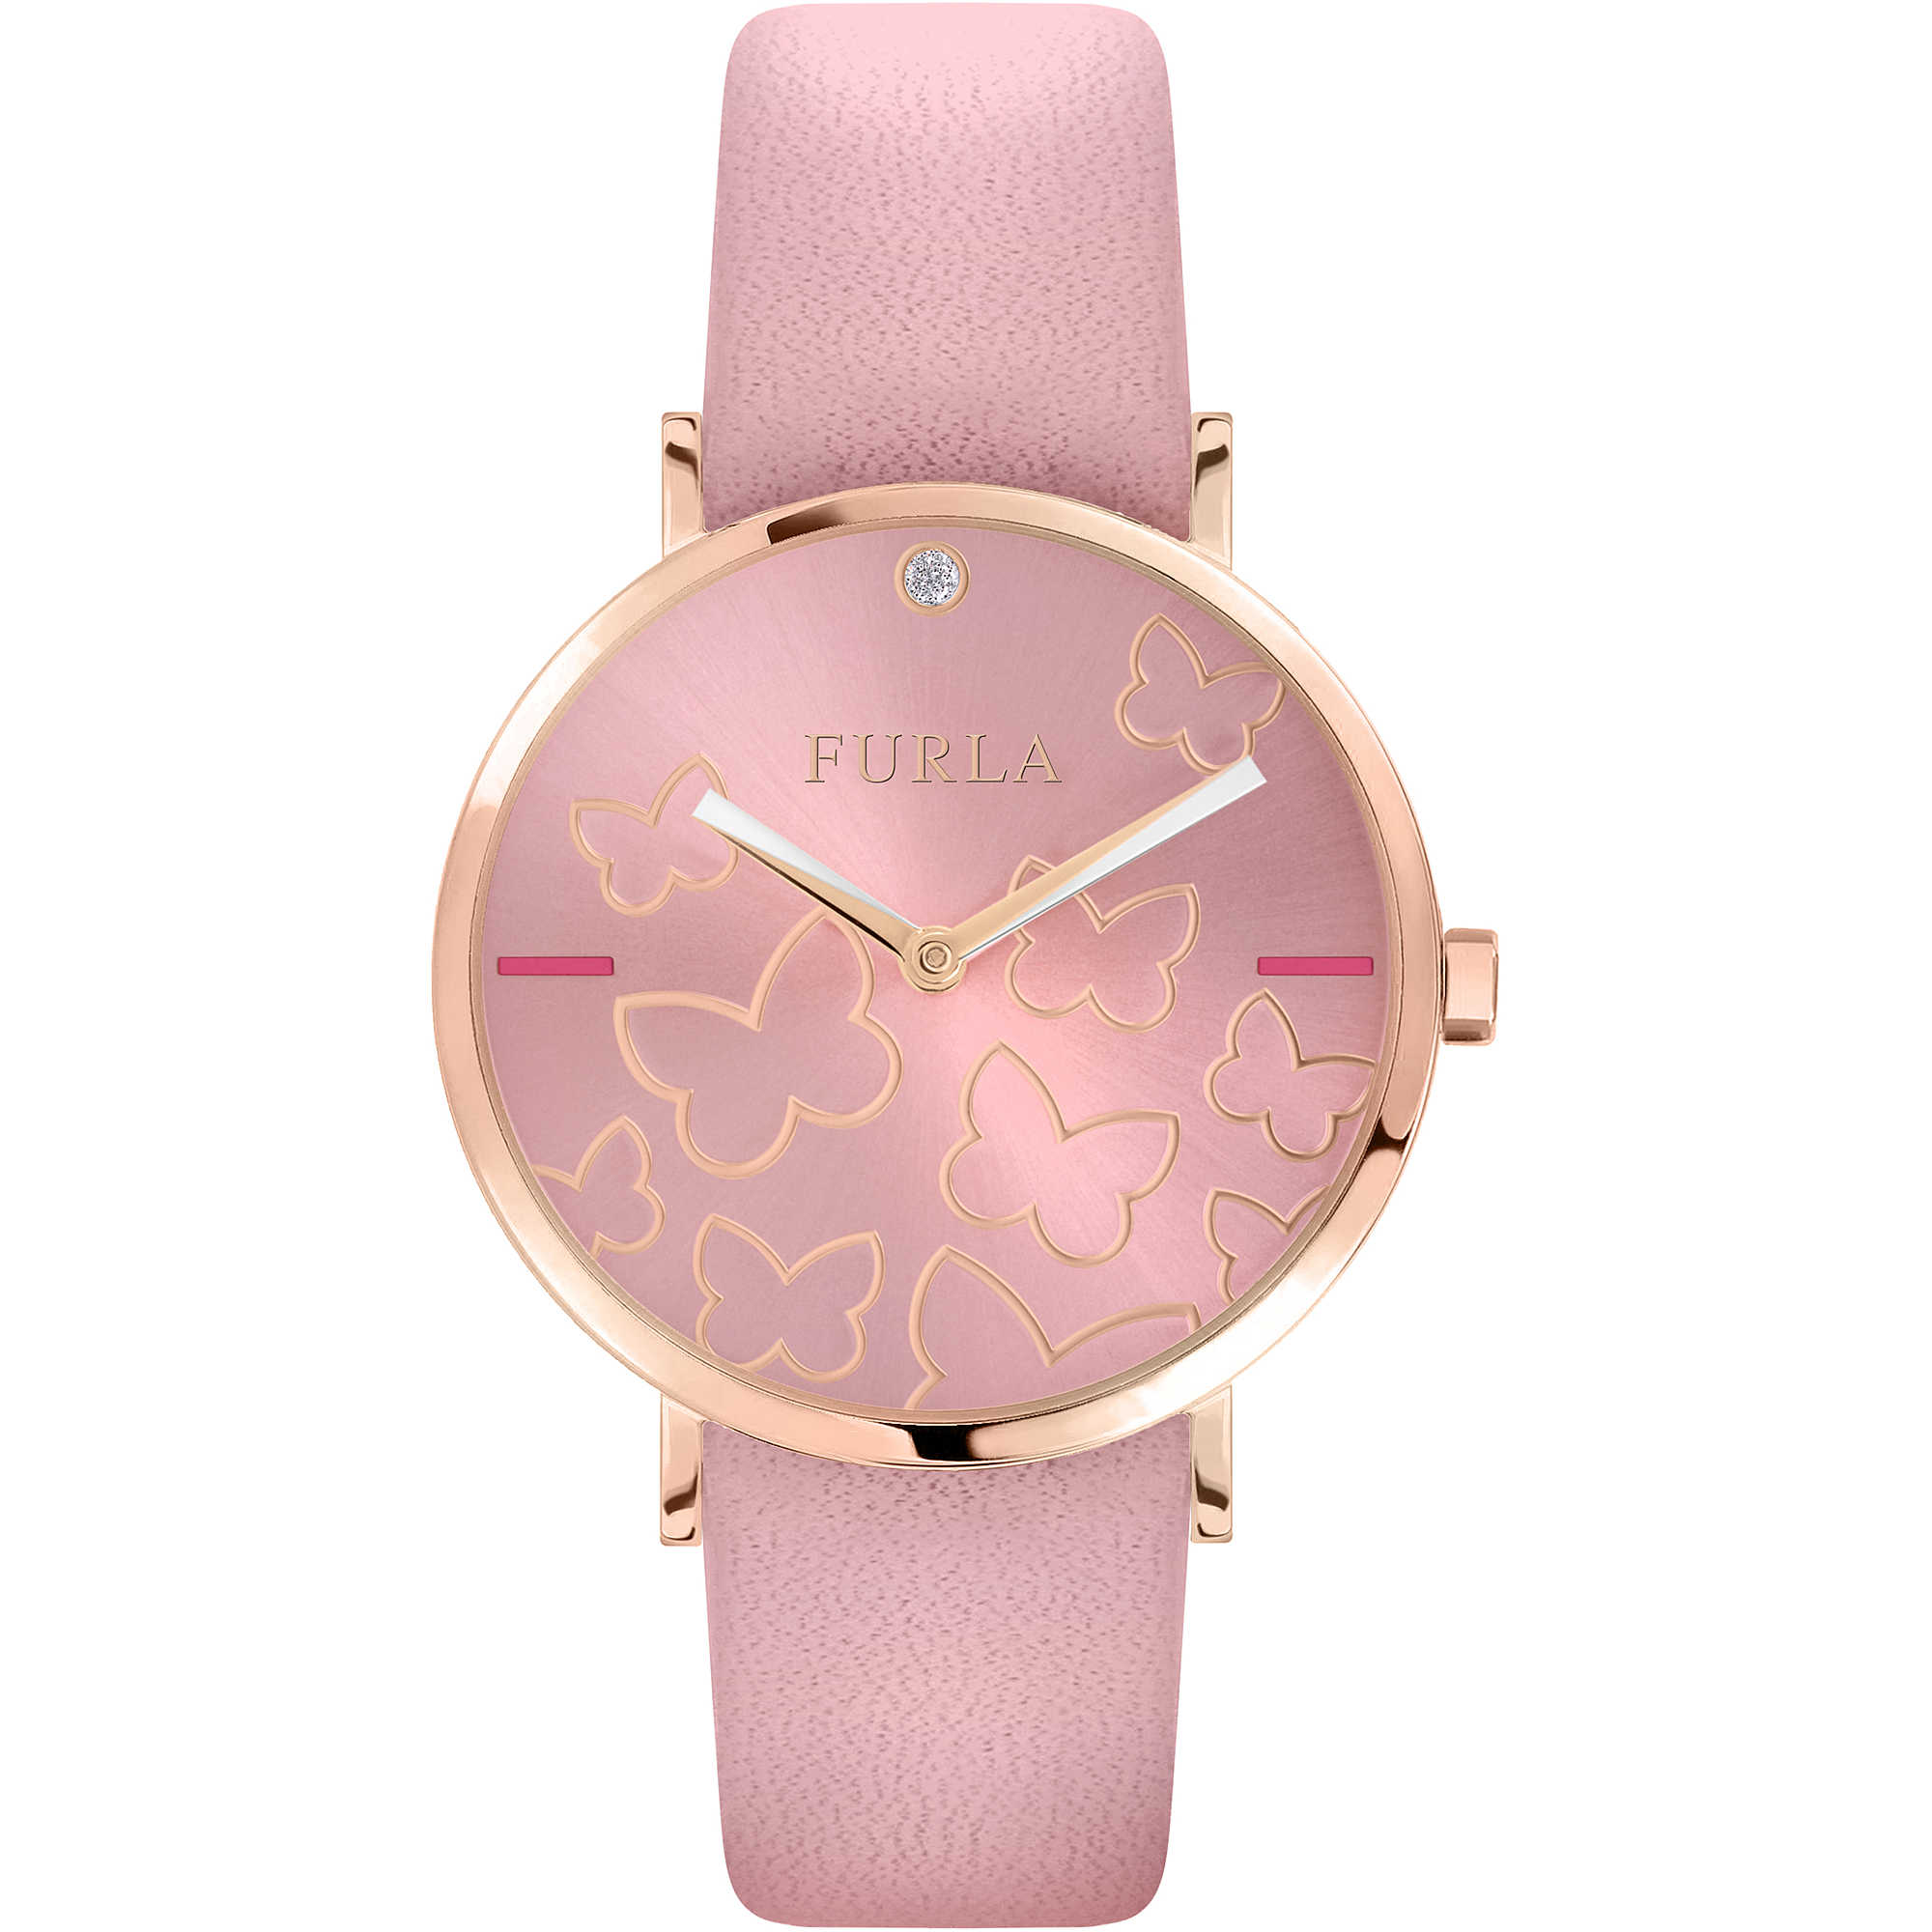 free pratt vintage shipping s flowers womens product olivia women style watch butterfly on watches orders overstock butterflies leather over and jewelry